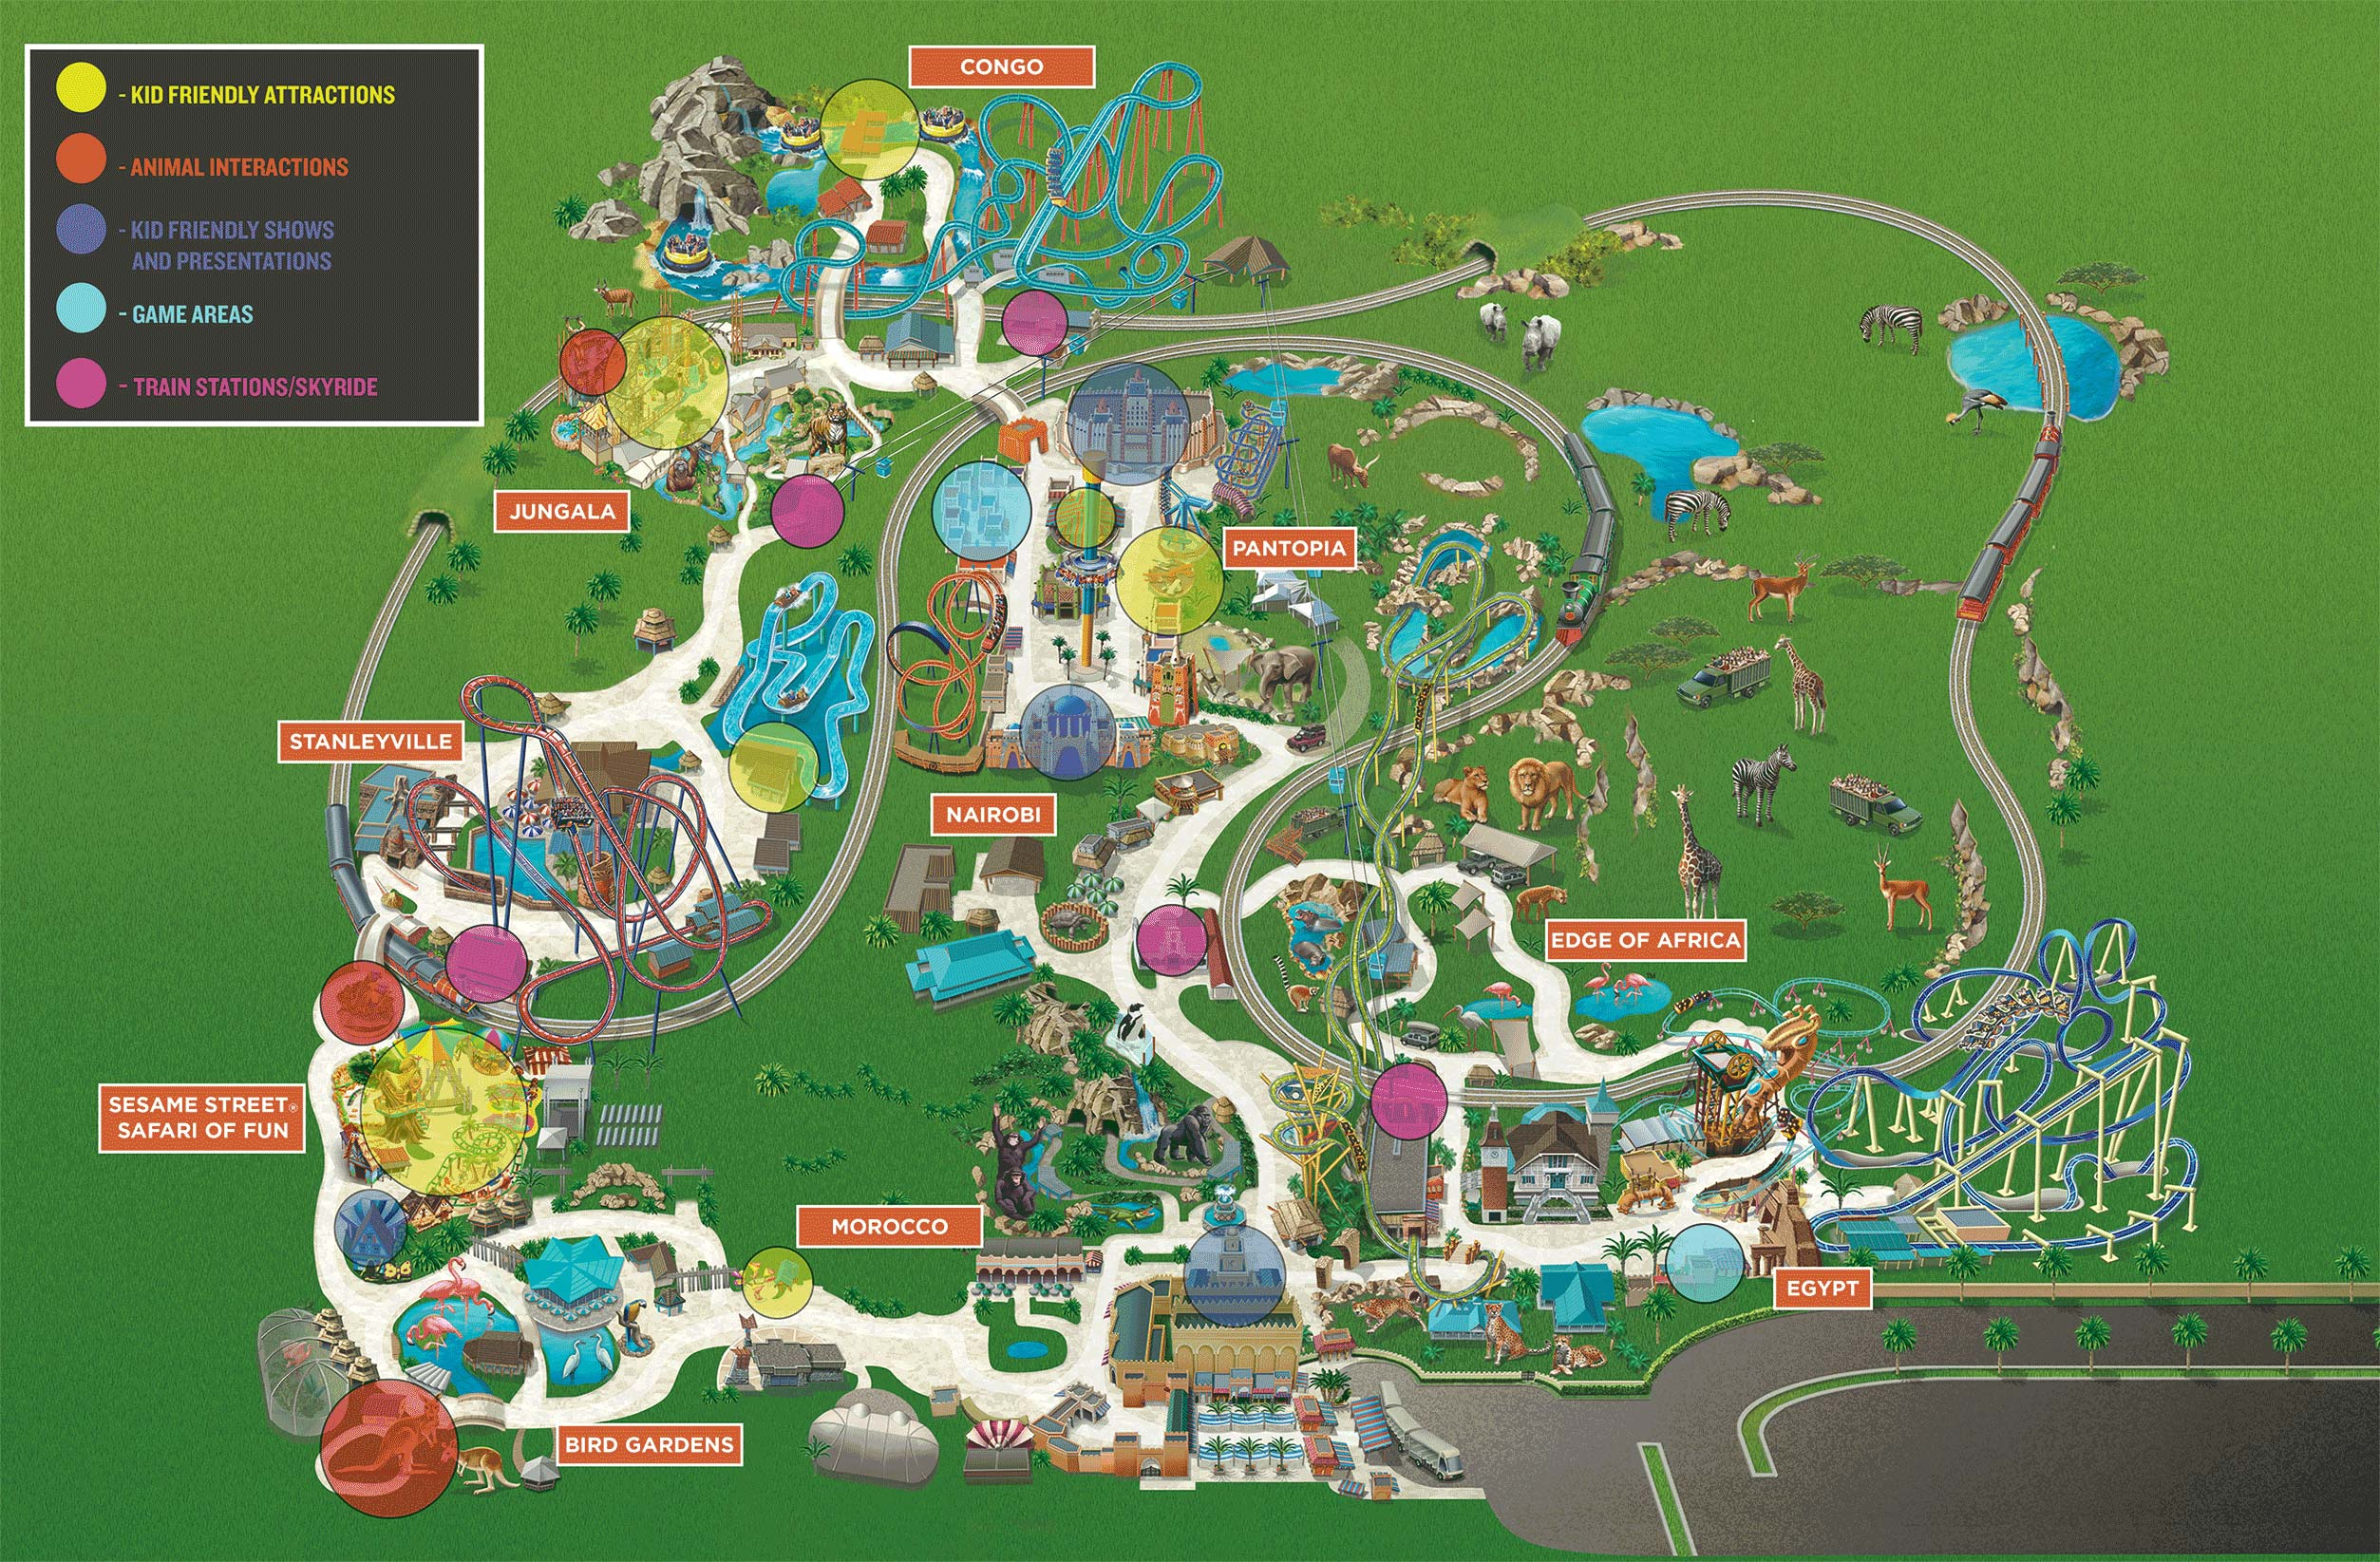 Kid Friendly Attractions at Busch Gardens Tampa Bay